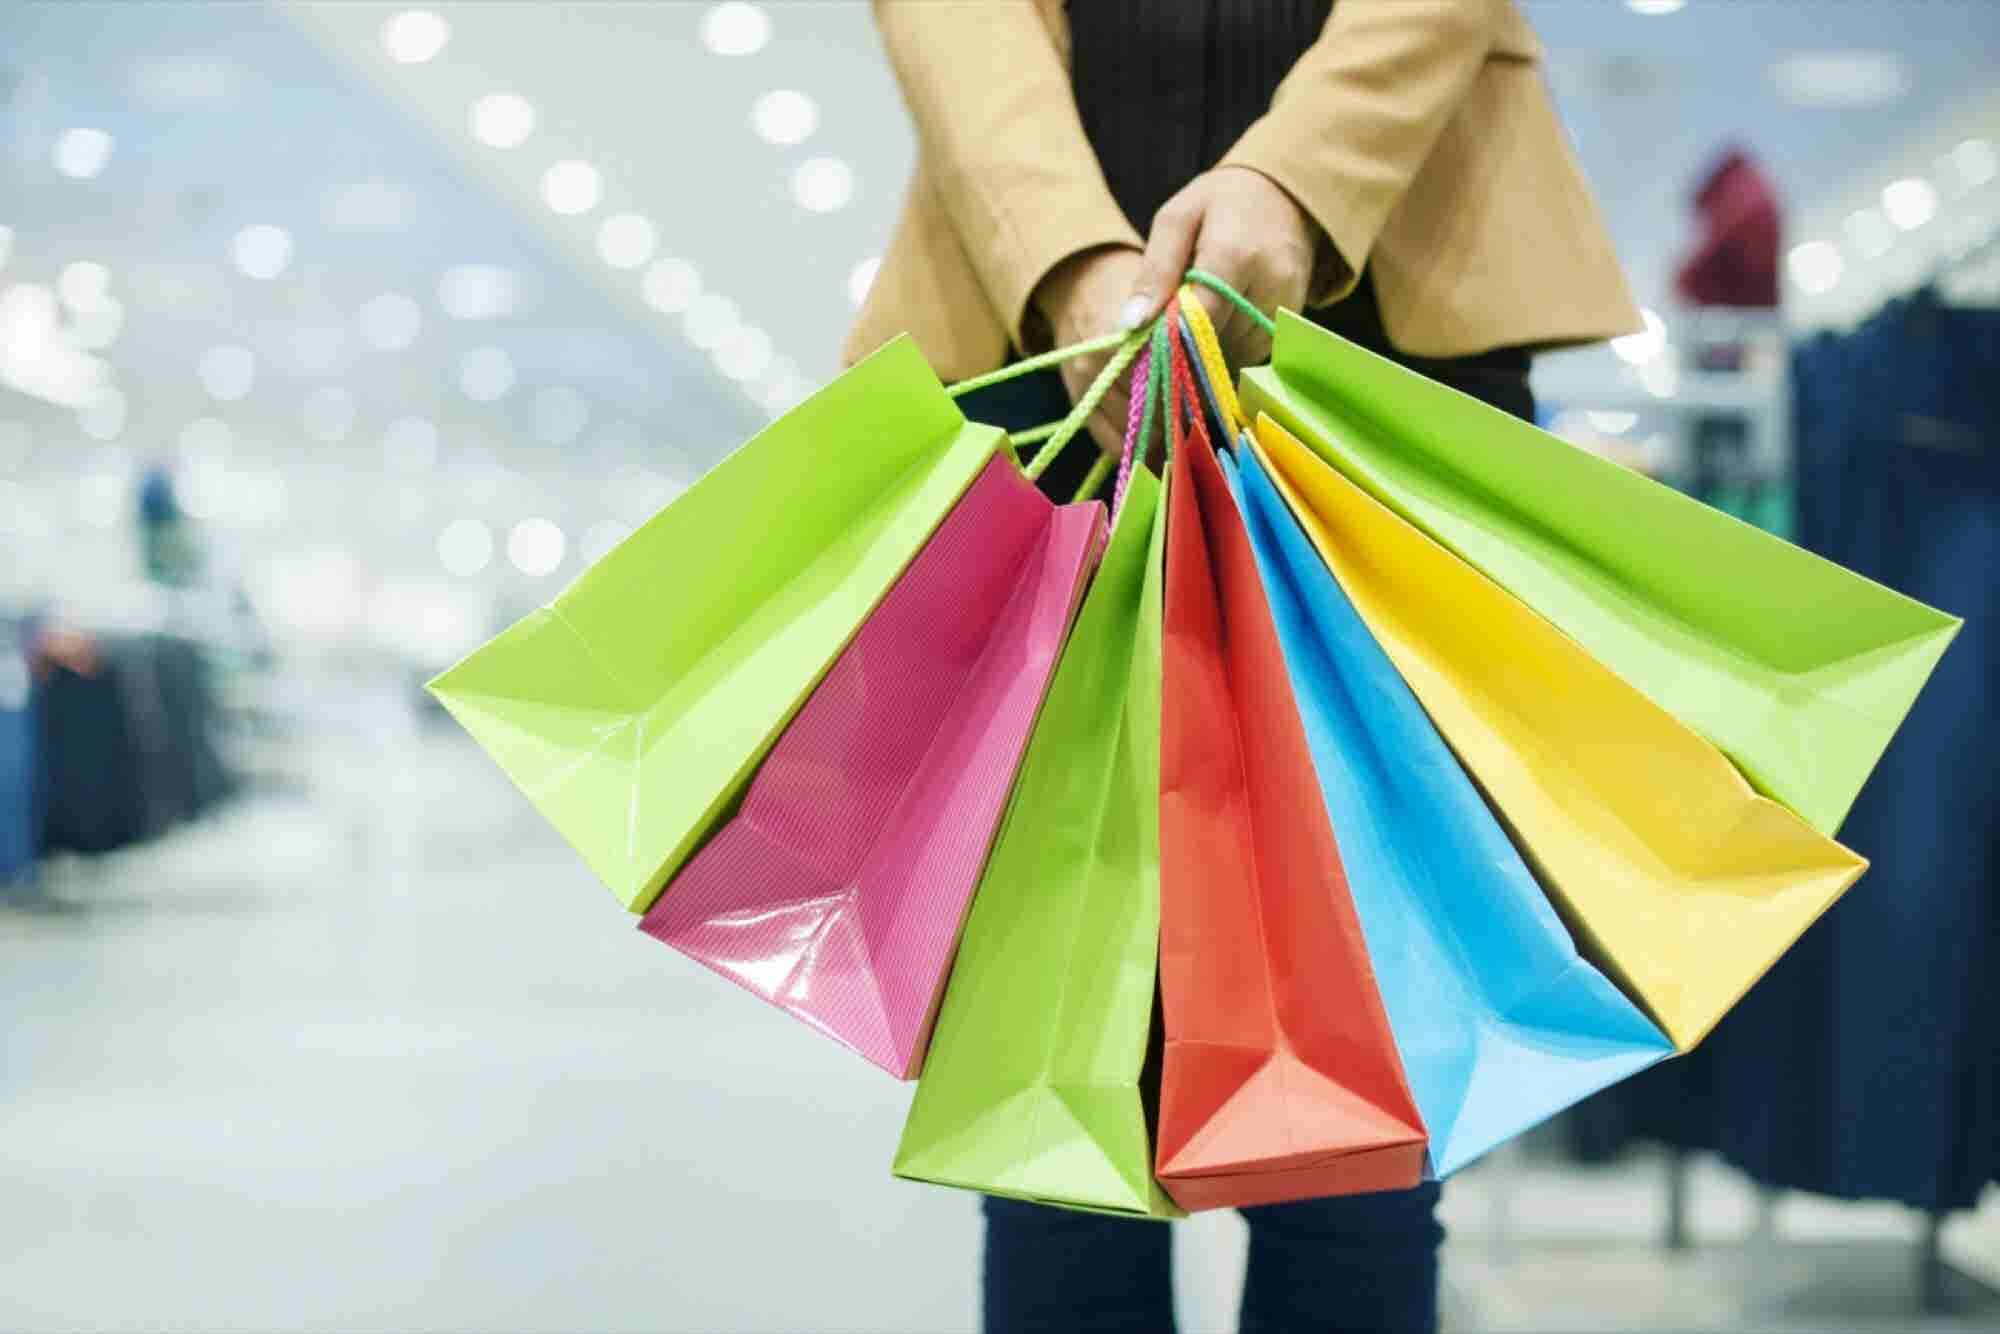 The Most Crucial Challenges Retail Industry Has Faced for Decades